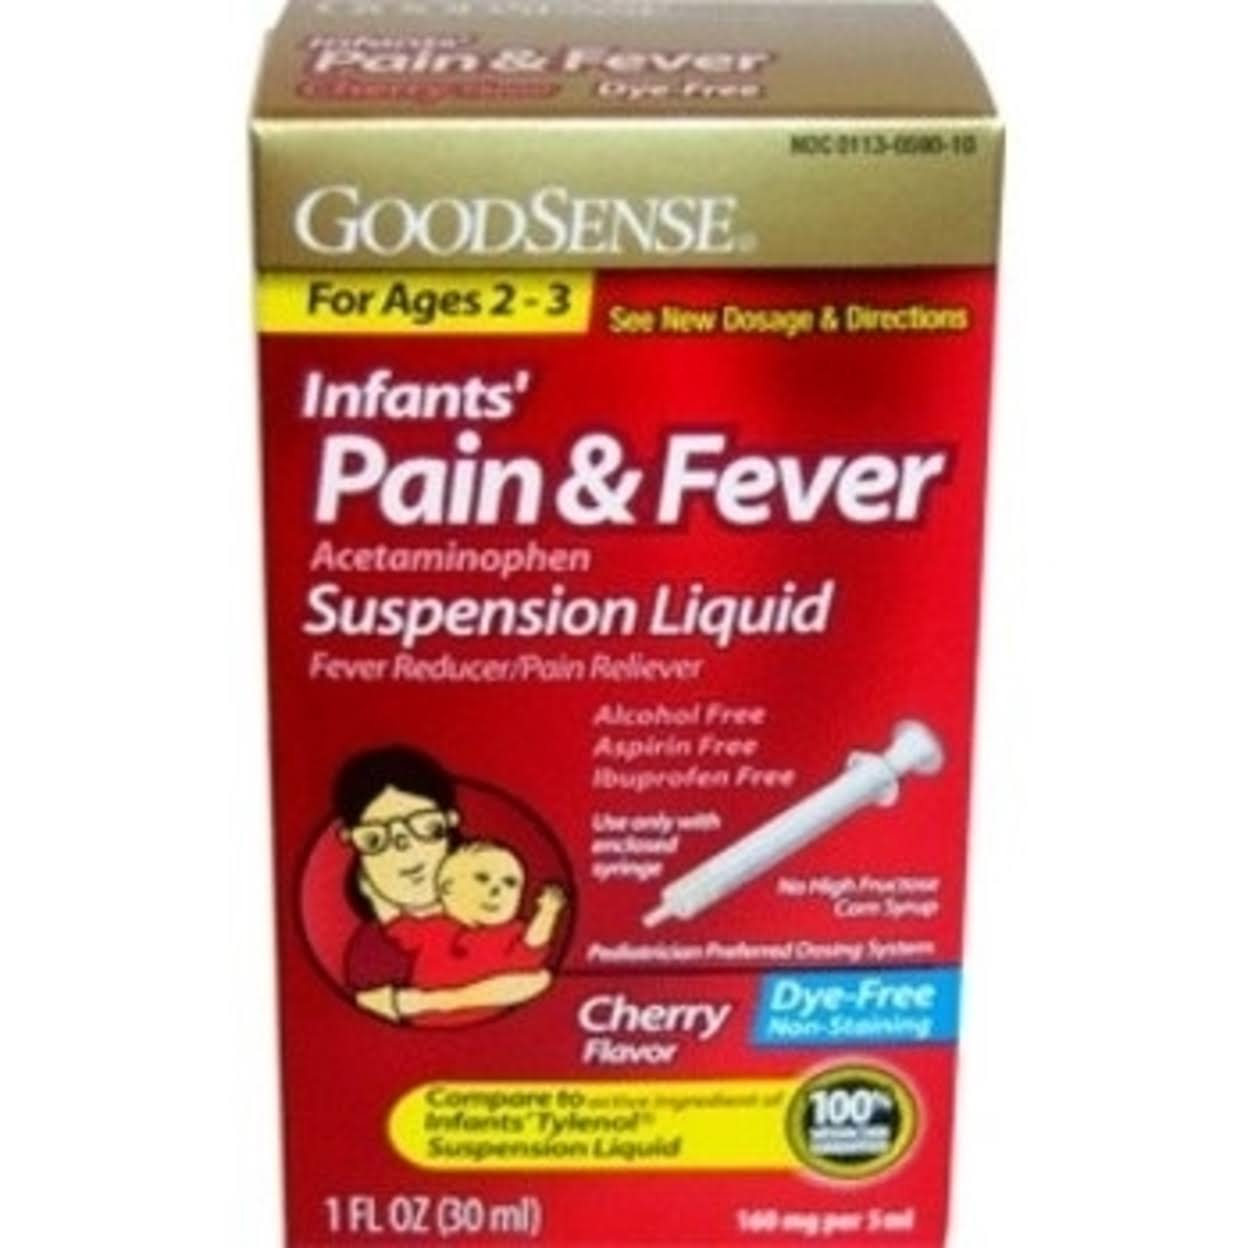 GoodSense Infant's Pain and Fever Acetaminophen - Grape Flavor, 160mg, 30ml